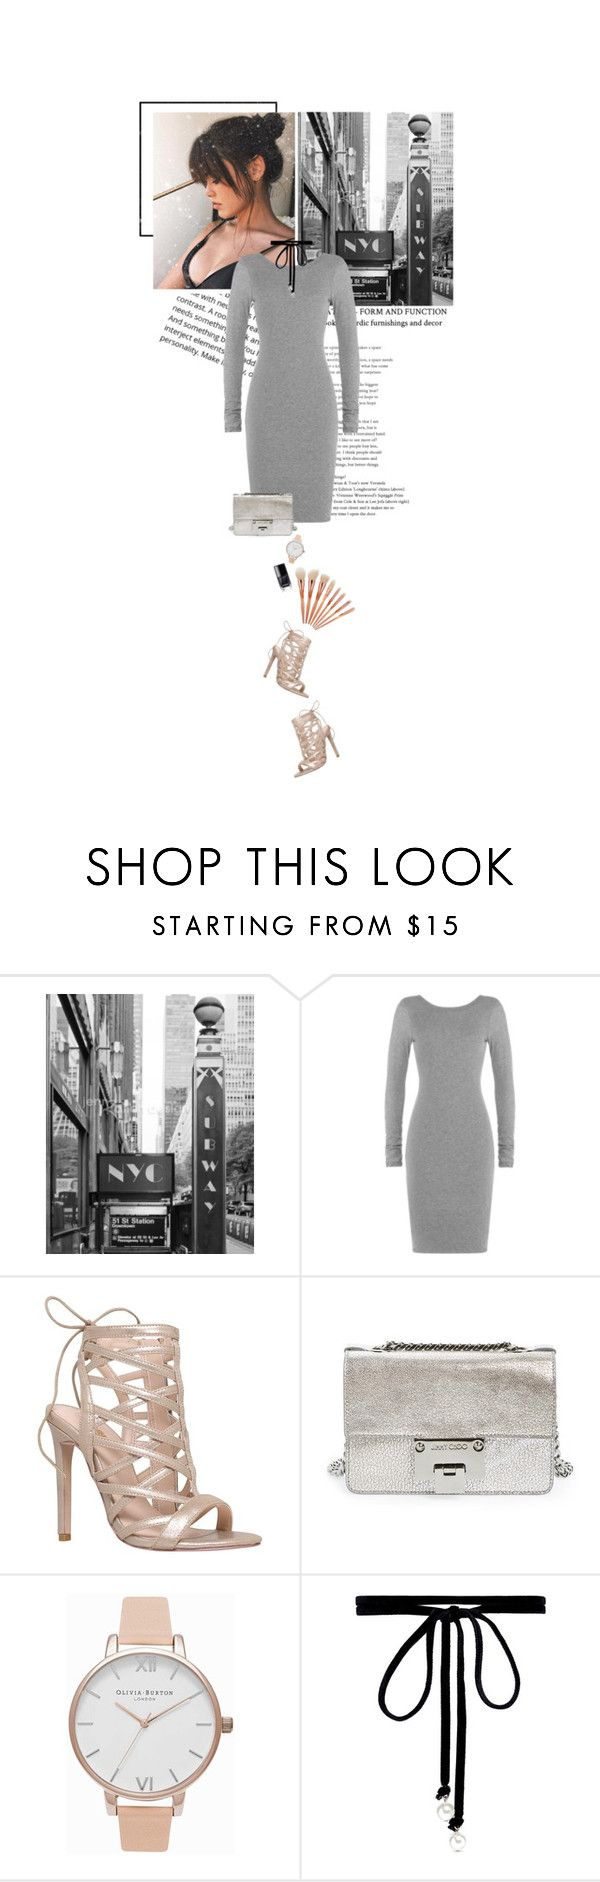 """""""city chic"""" by beingaries ❤ liked on Polyvore featuring James Perse, Carvela, Jimmy Choo, Olivia Burton and Joomi Lim"""